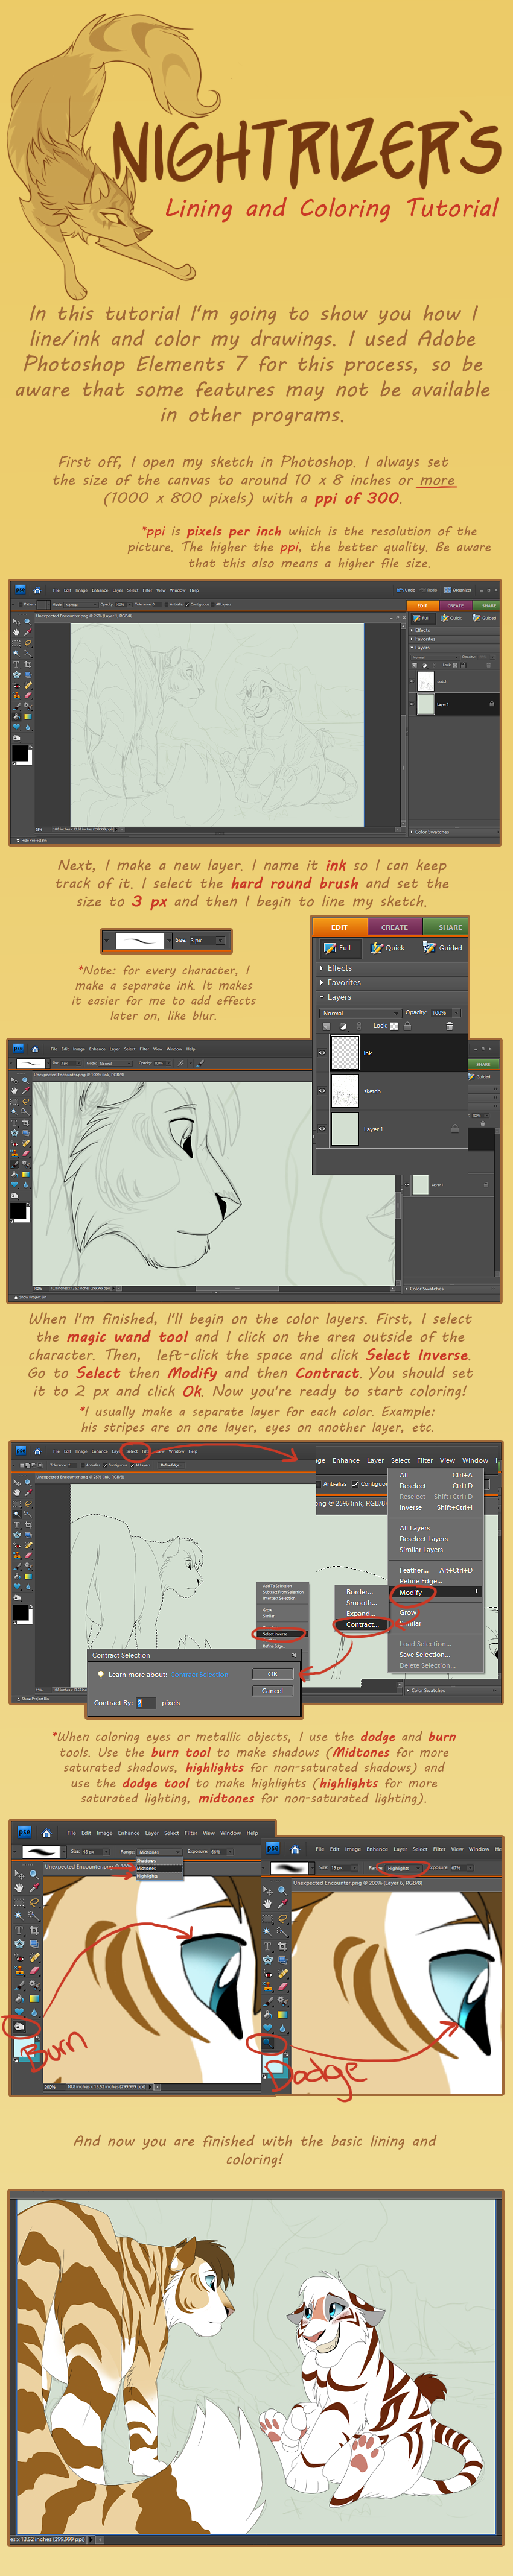 Lining and coloring tutorial by nightrizer on deviantart lining and coloring tutorial by nightrizer lining and coloring tutorial by nightrizer baditri Choice Image